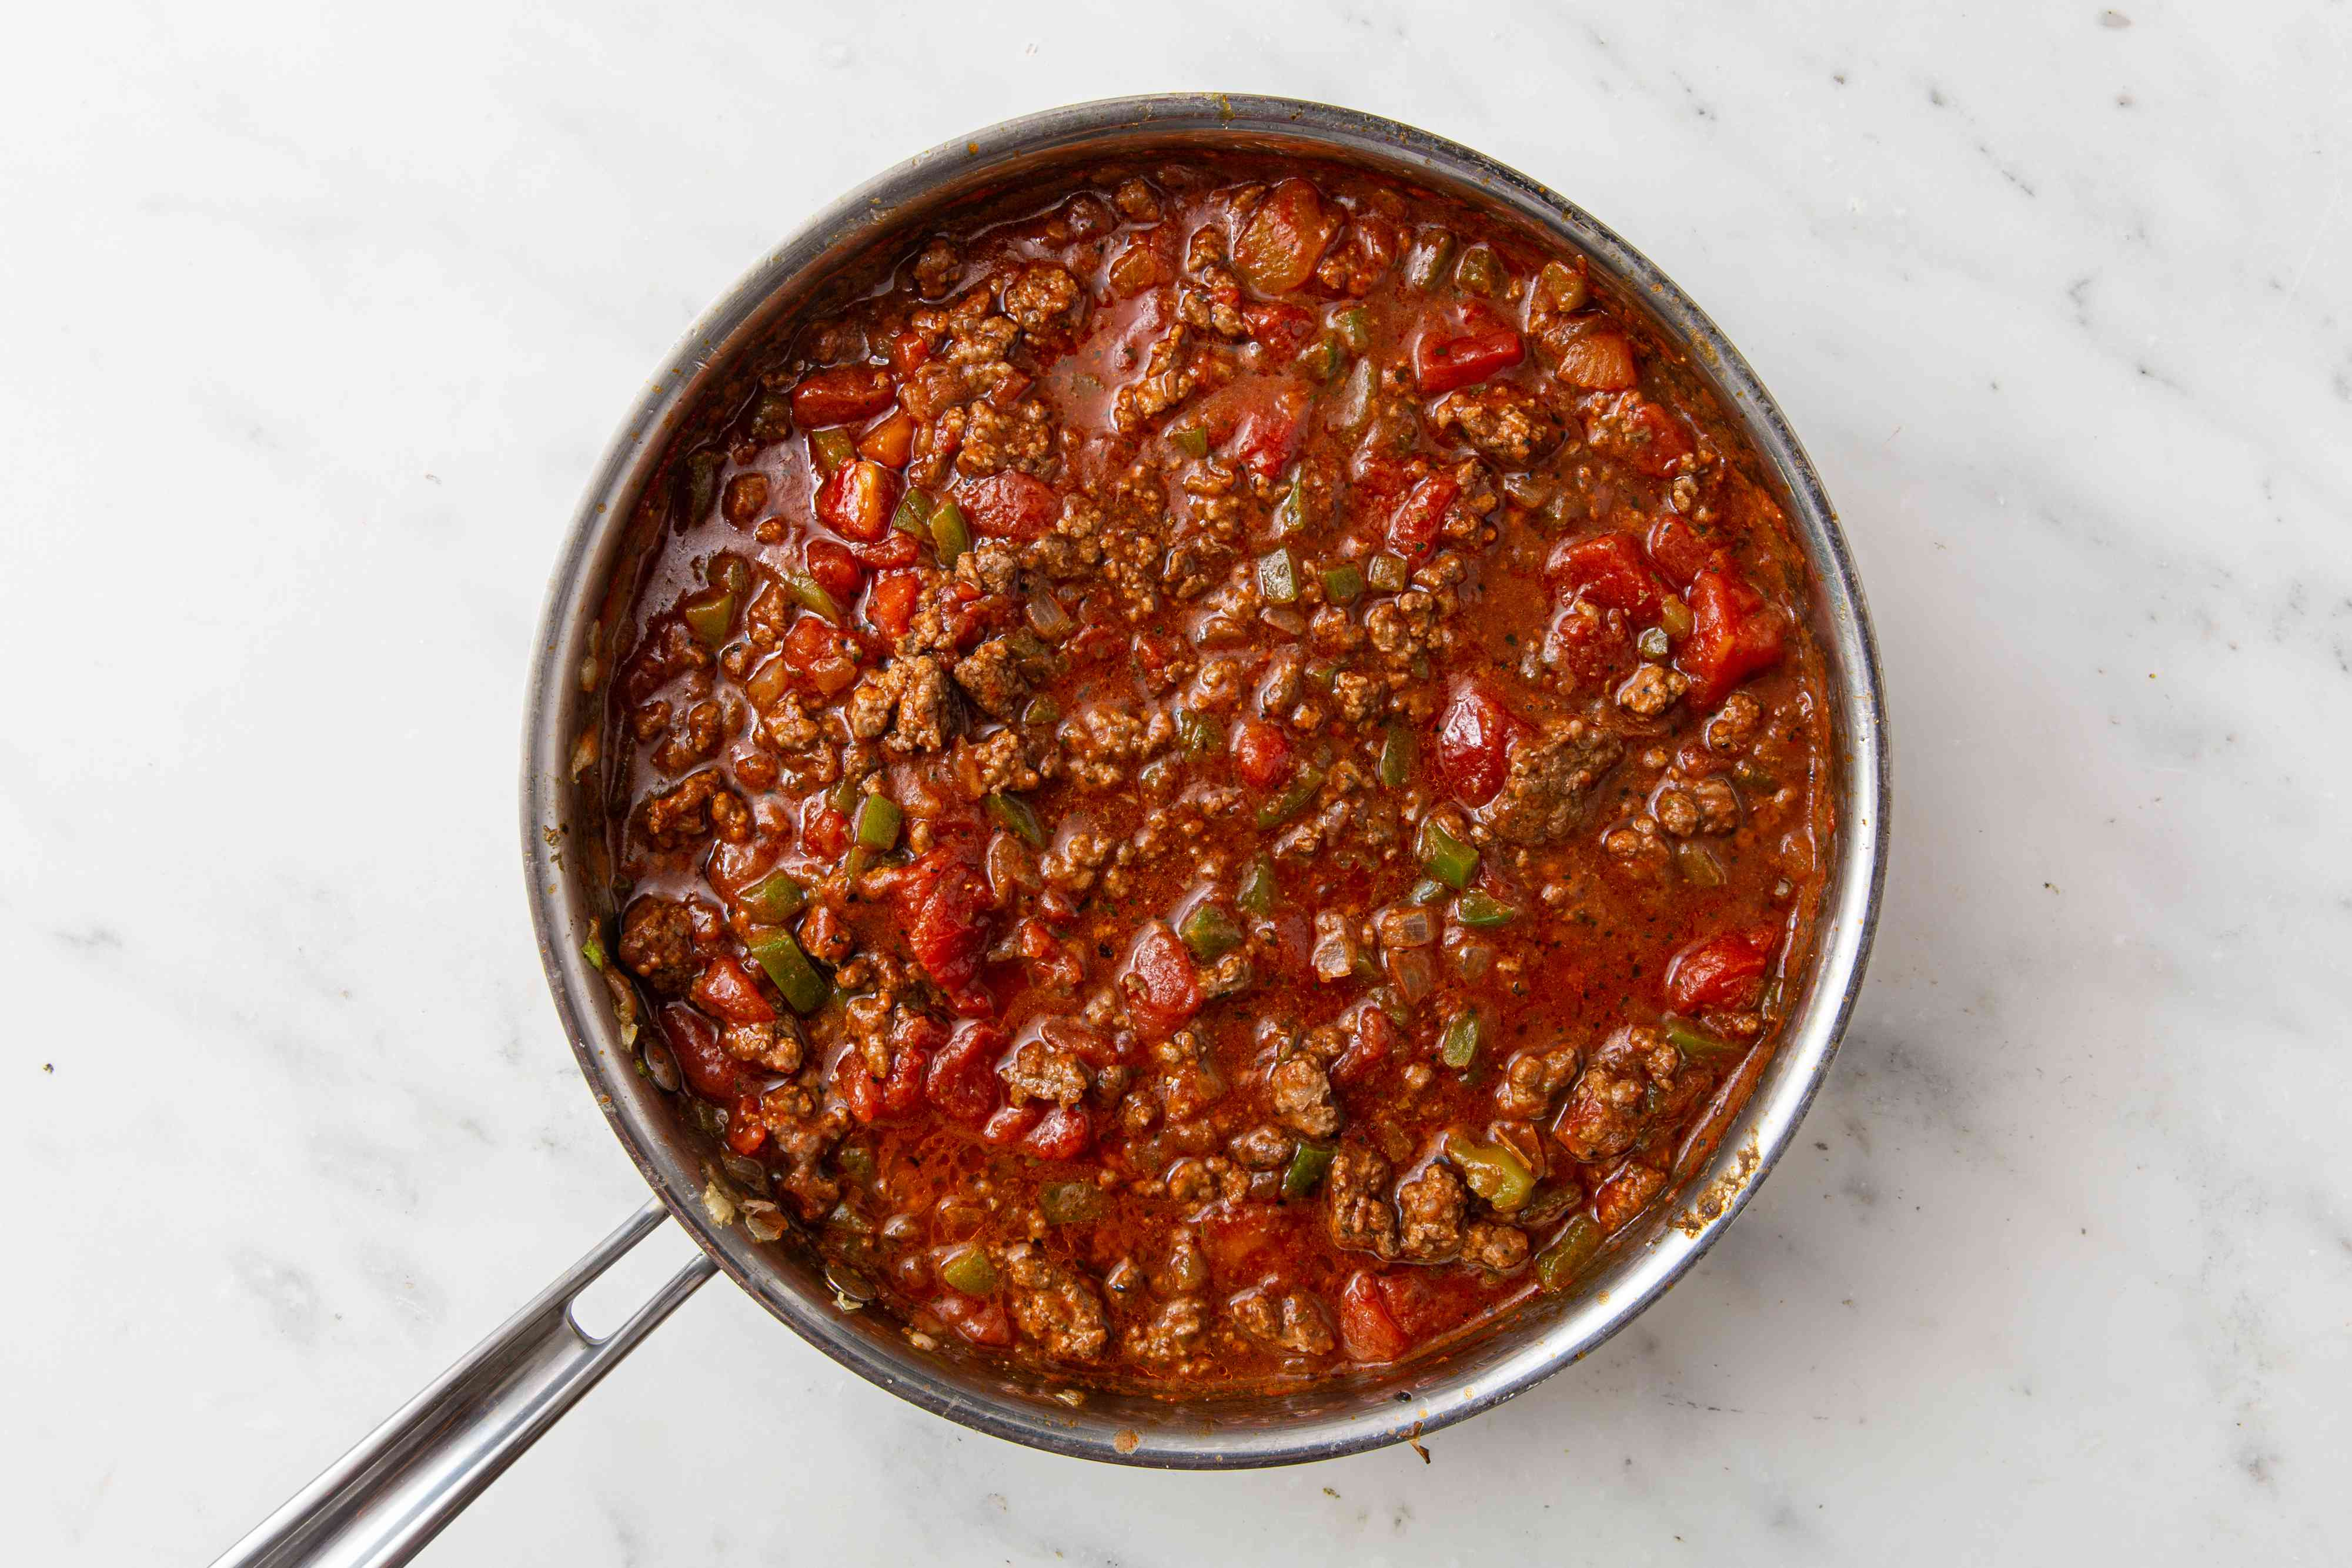 Ground beef, tomatoes, onions and green peppers in a pan